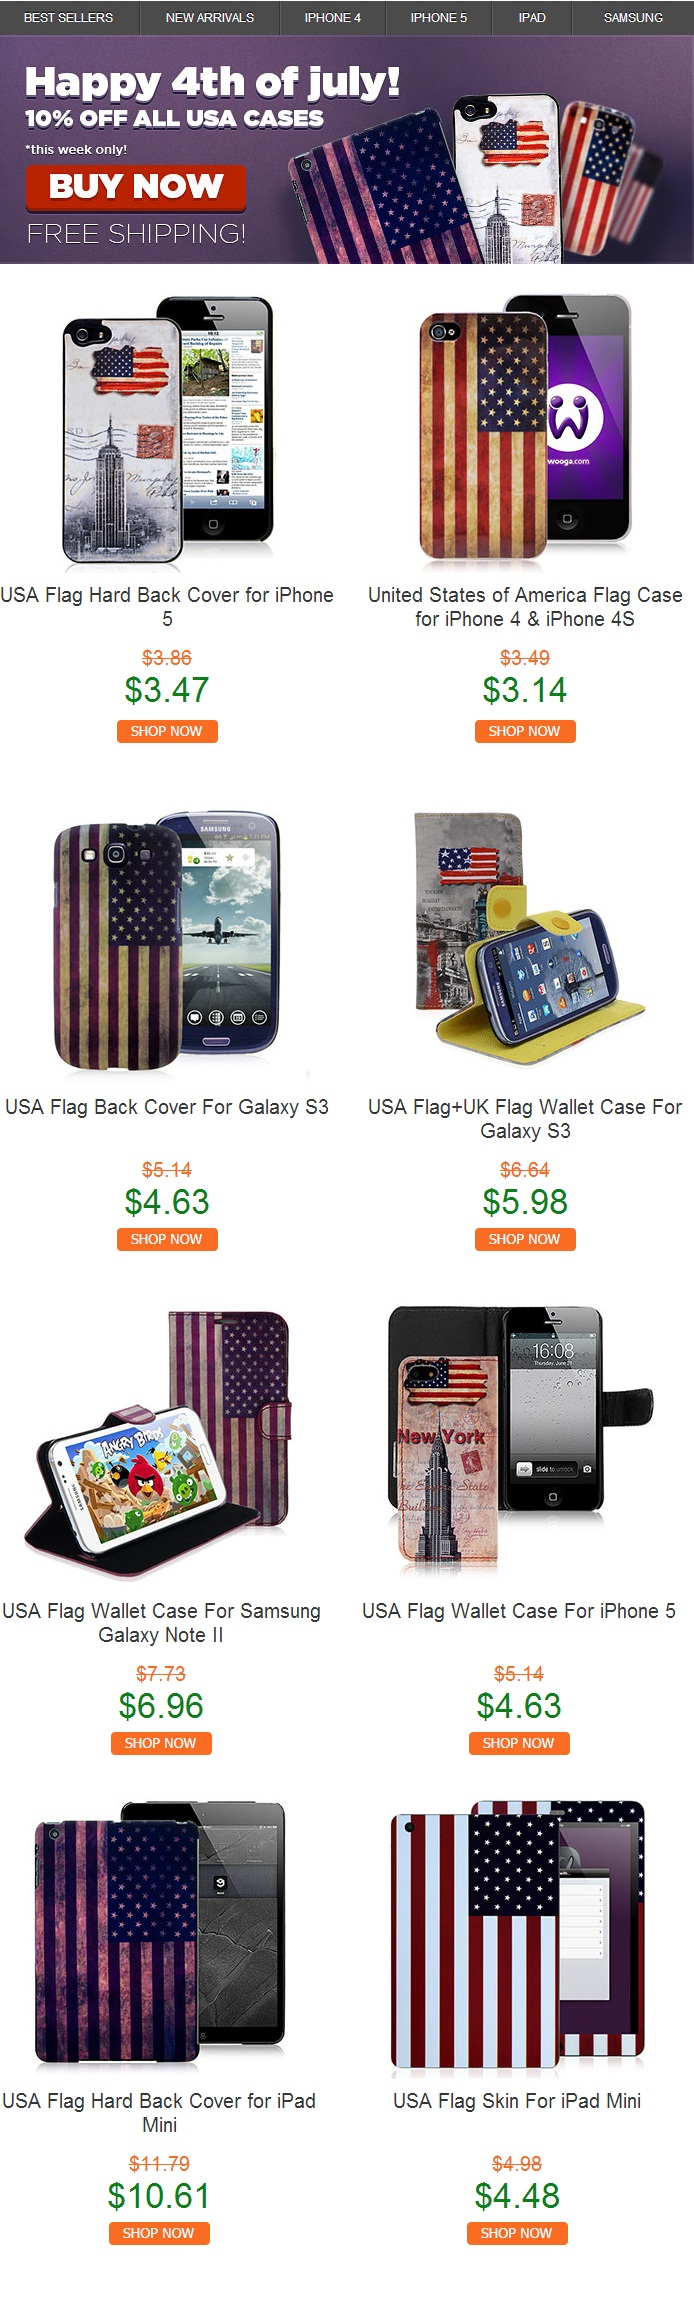 4th of July 10% discount on USA cases